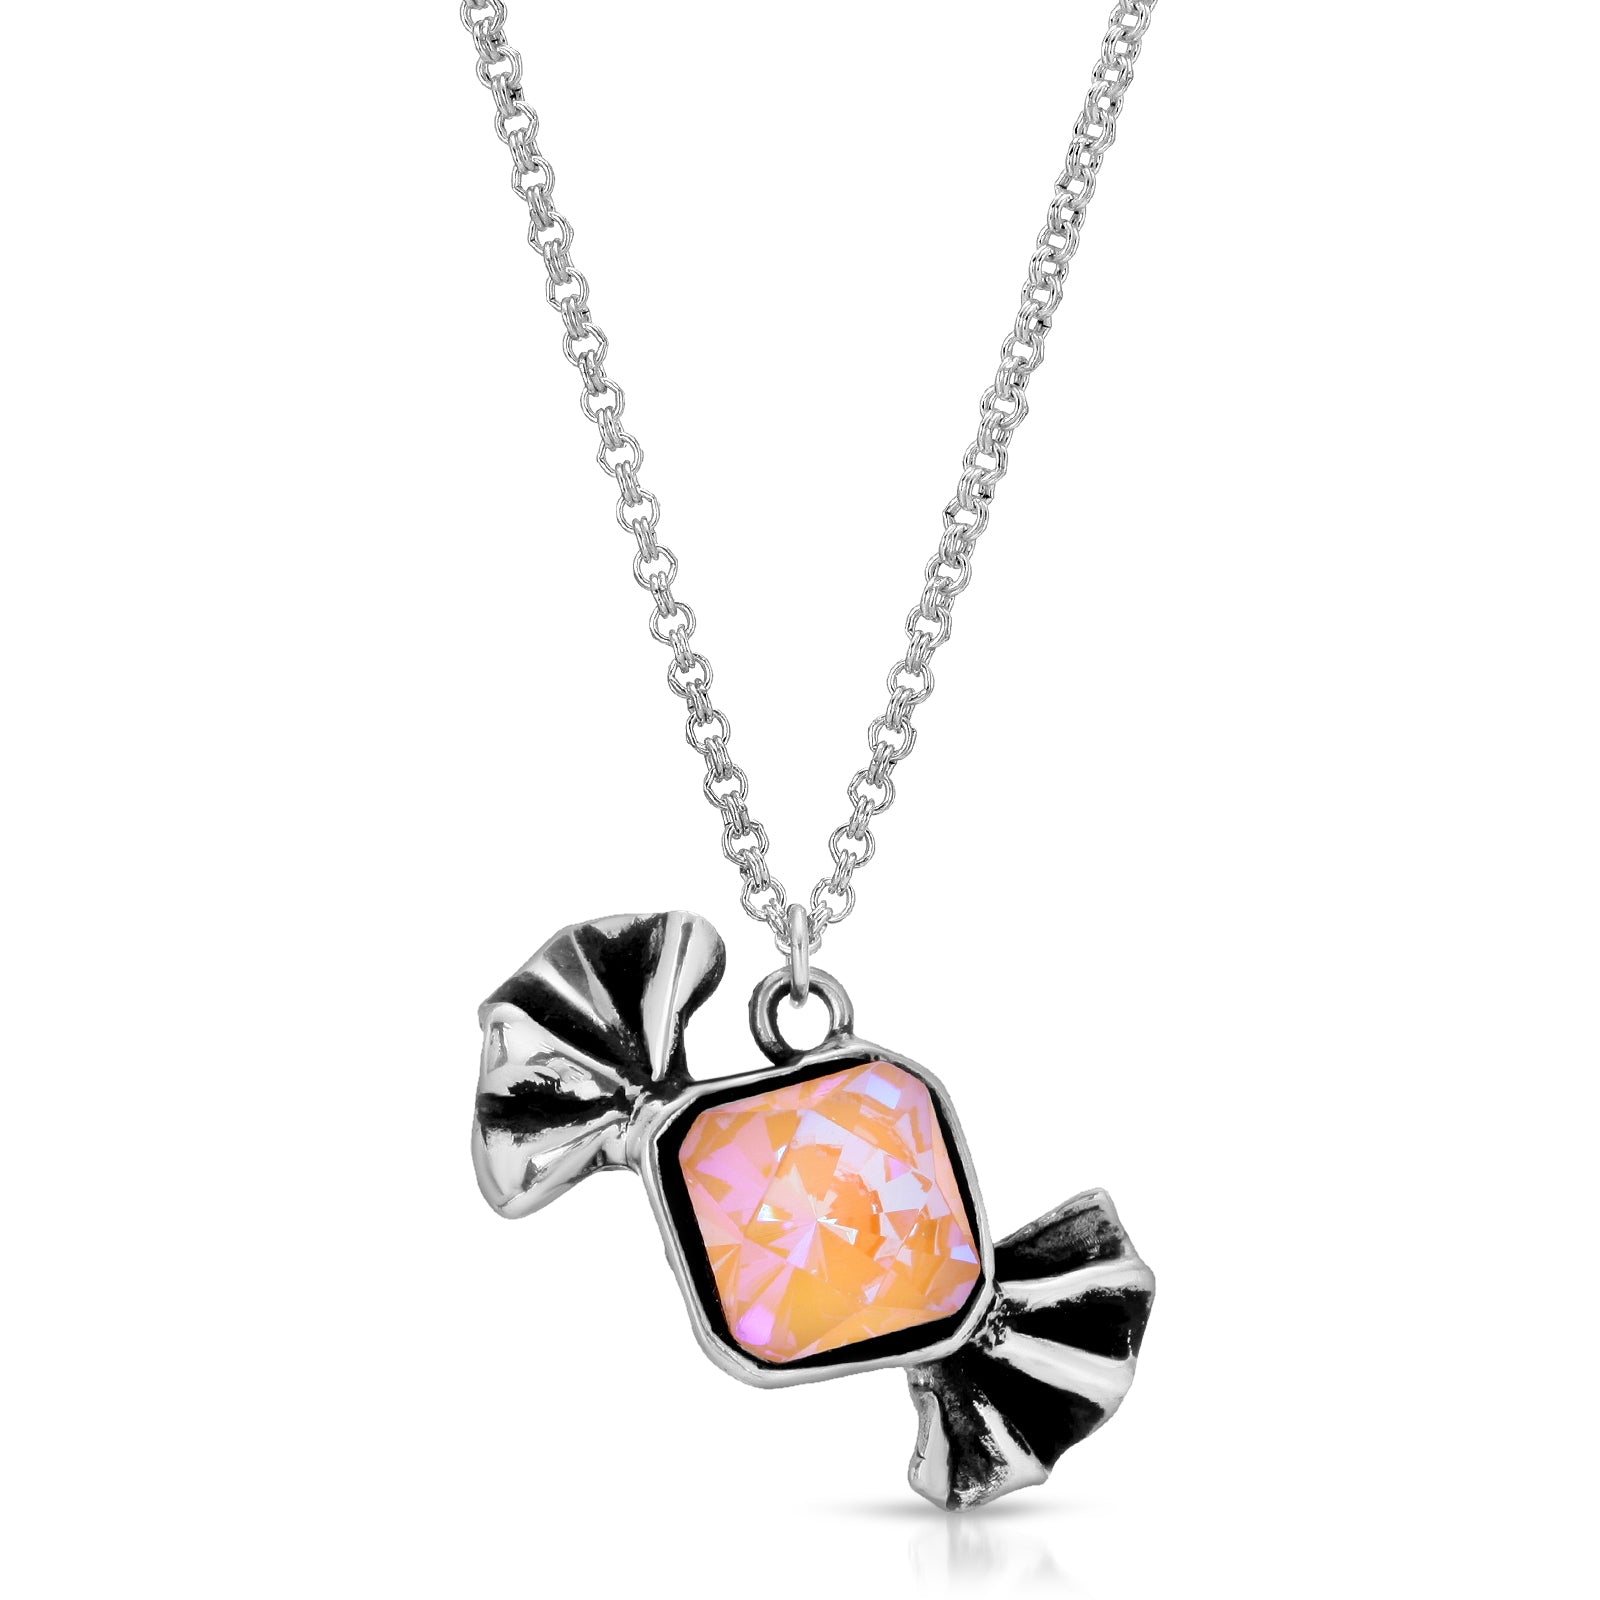 The W Brothers Premium Grade A 925 Sterling Silver Peach Bow-Tie Candy Pendant. Each distinct candy pendant is hand-selected & set with tri-toned clarity Swarovski crystals to enumerate a modern chest piece for women. Available at www.thewbros.com